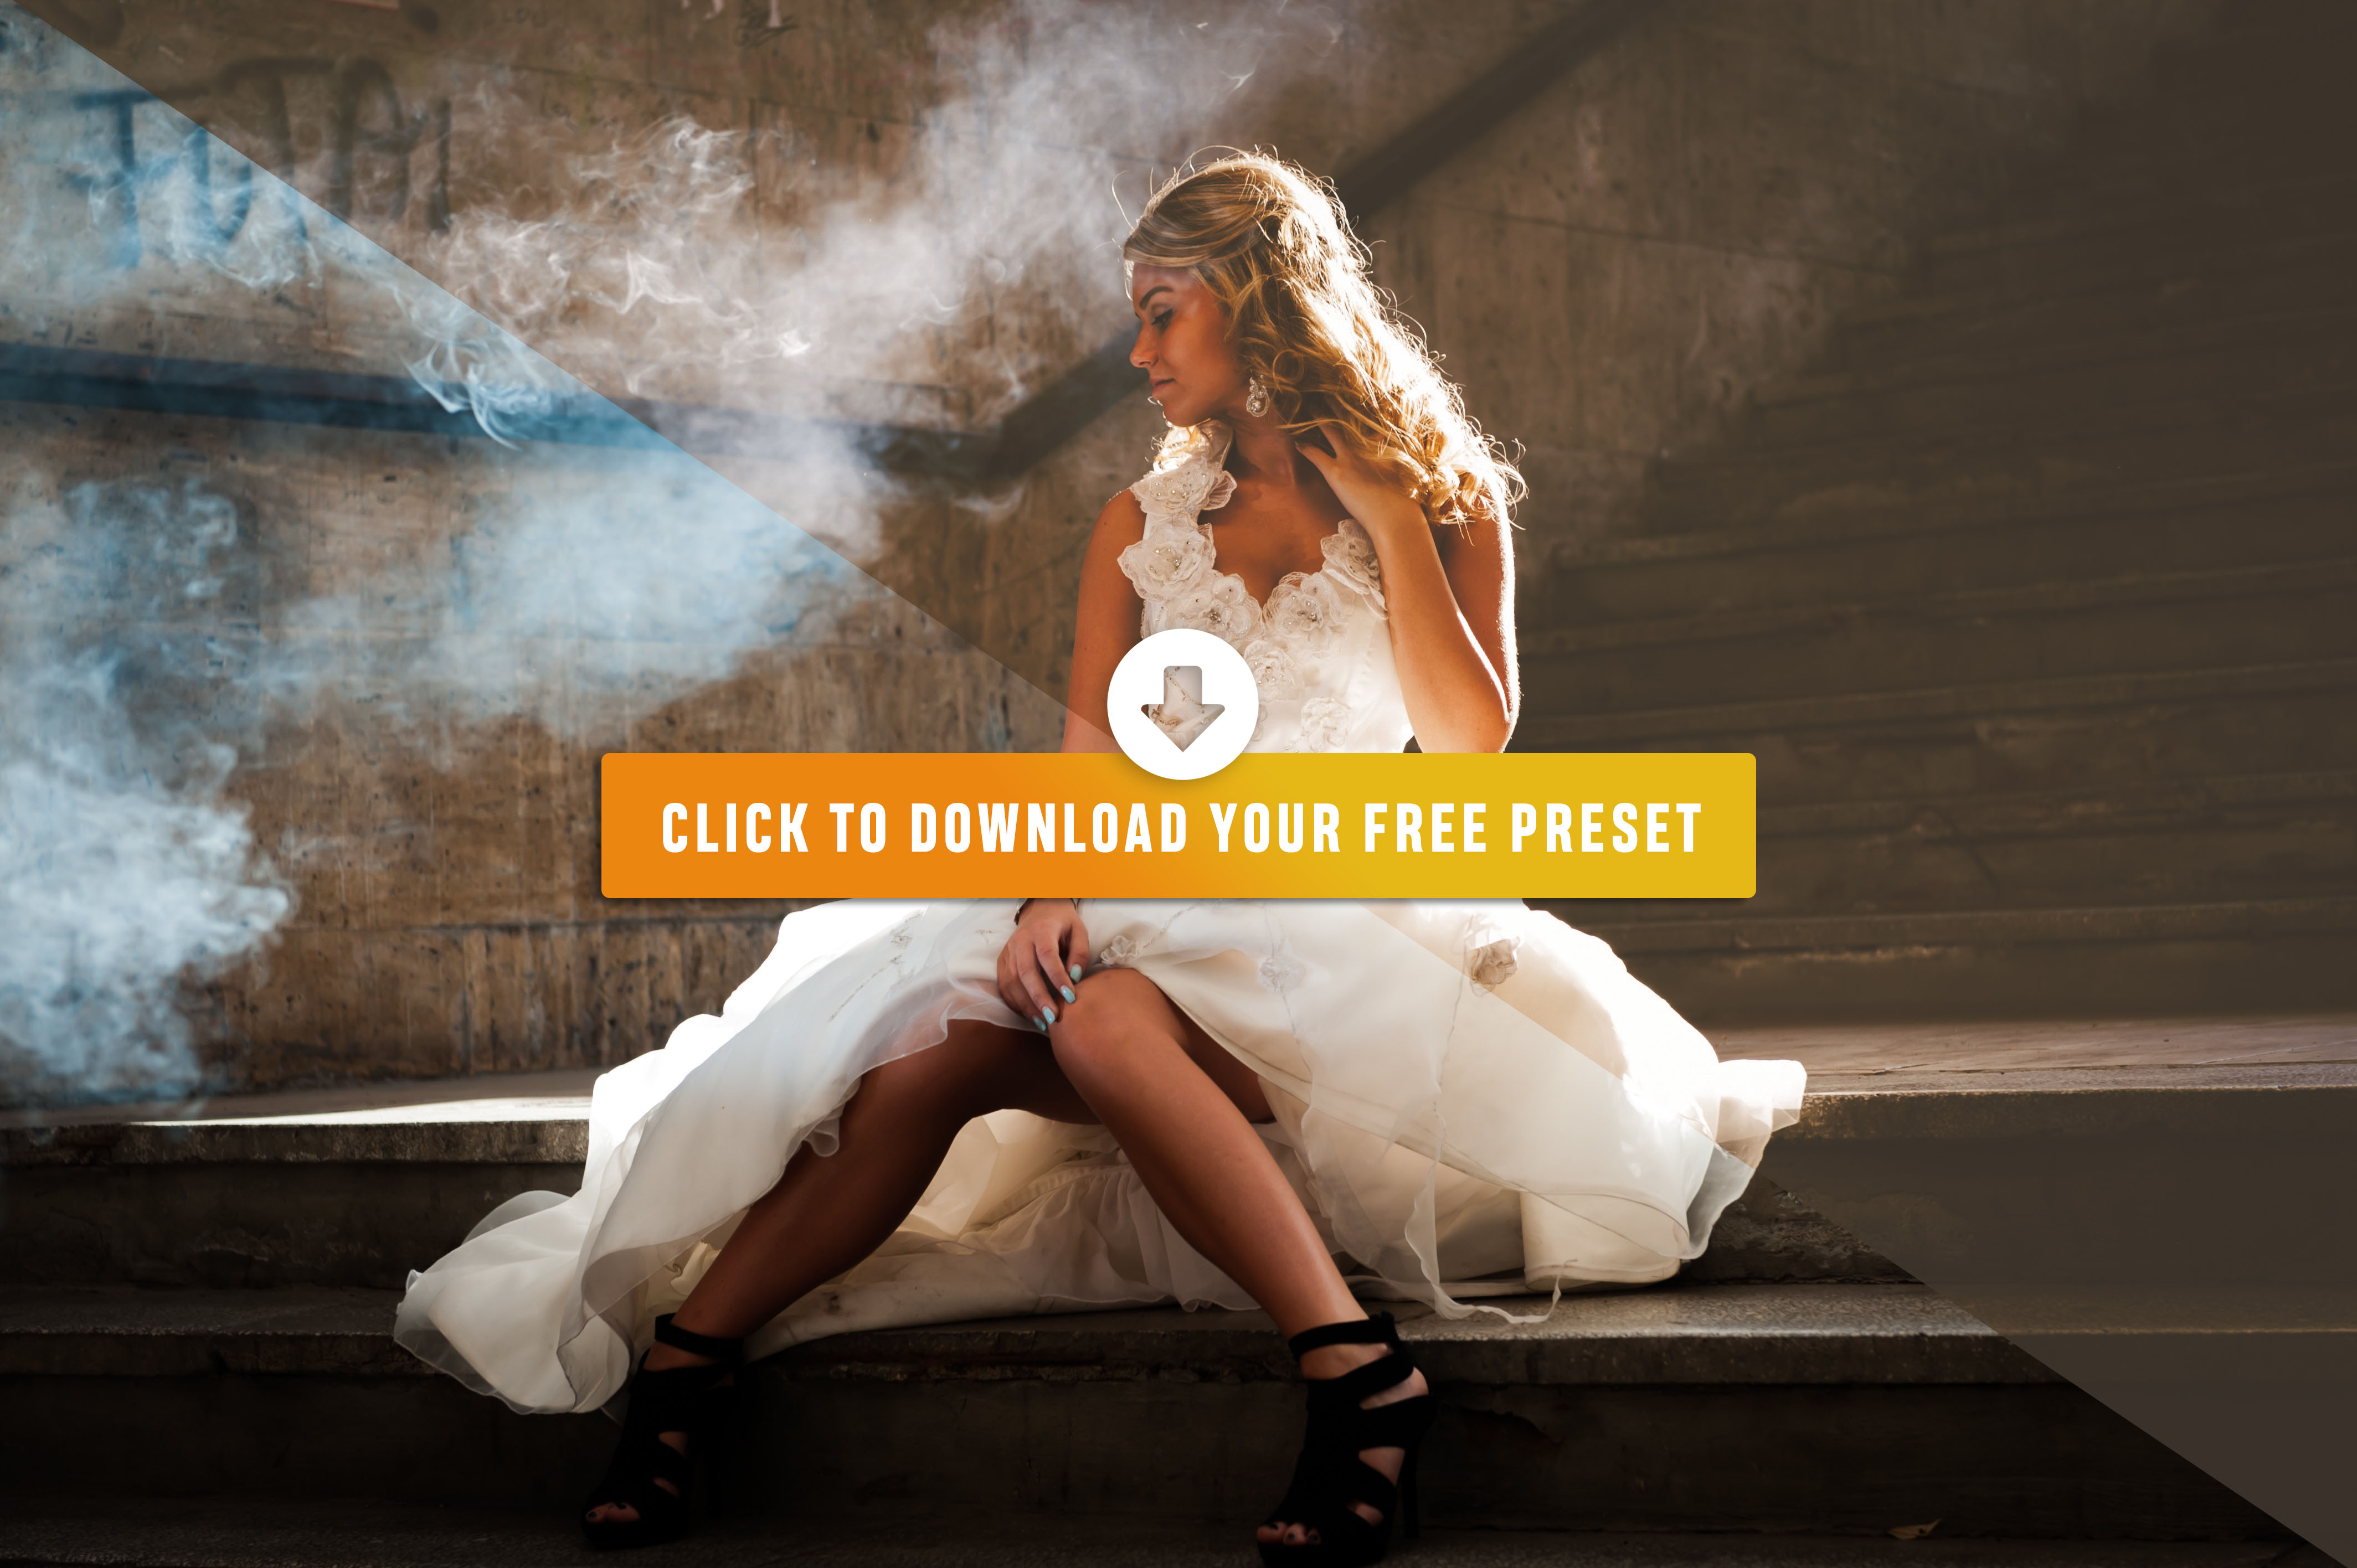 free-lightroom-presets-adobe-photoshop-photography-sleeklens-best-presets-edit